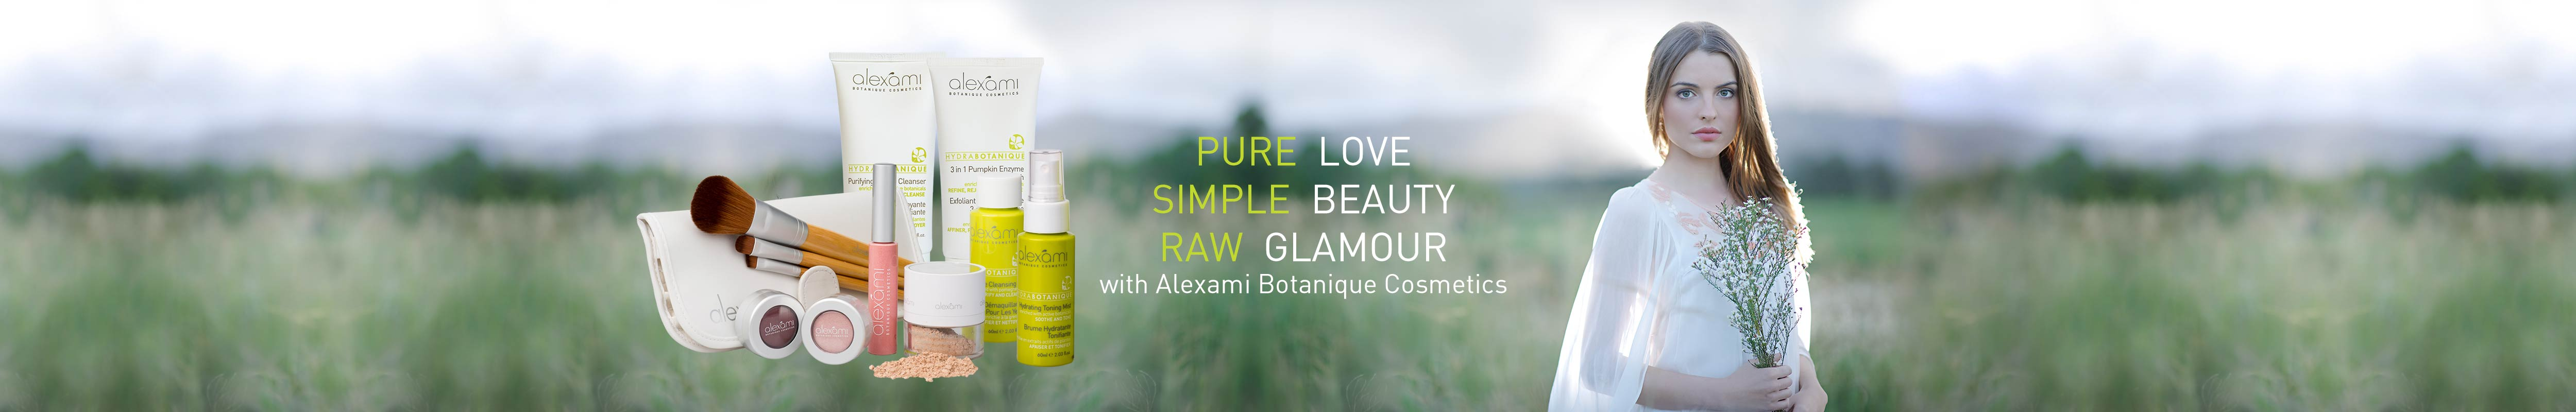 Pure Love, Simple beauty, Raw glamour with Alexami Botanique Cosmetics